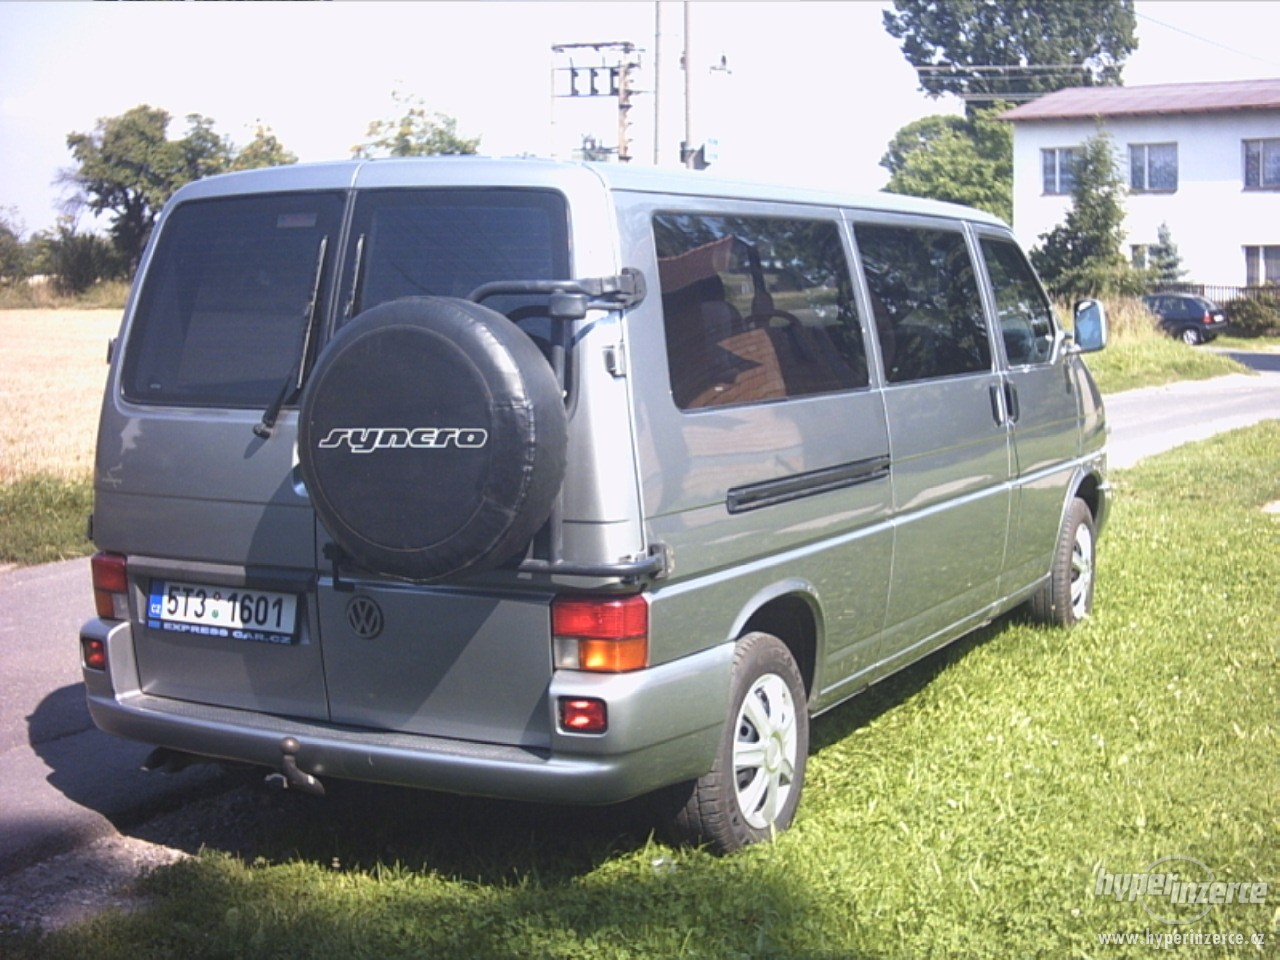 Volkswagen Caravelle 2.5 syncro фото 3